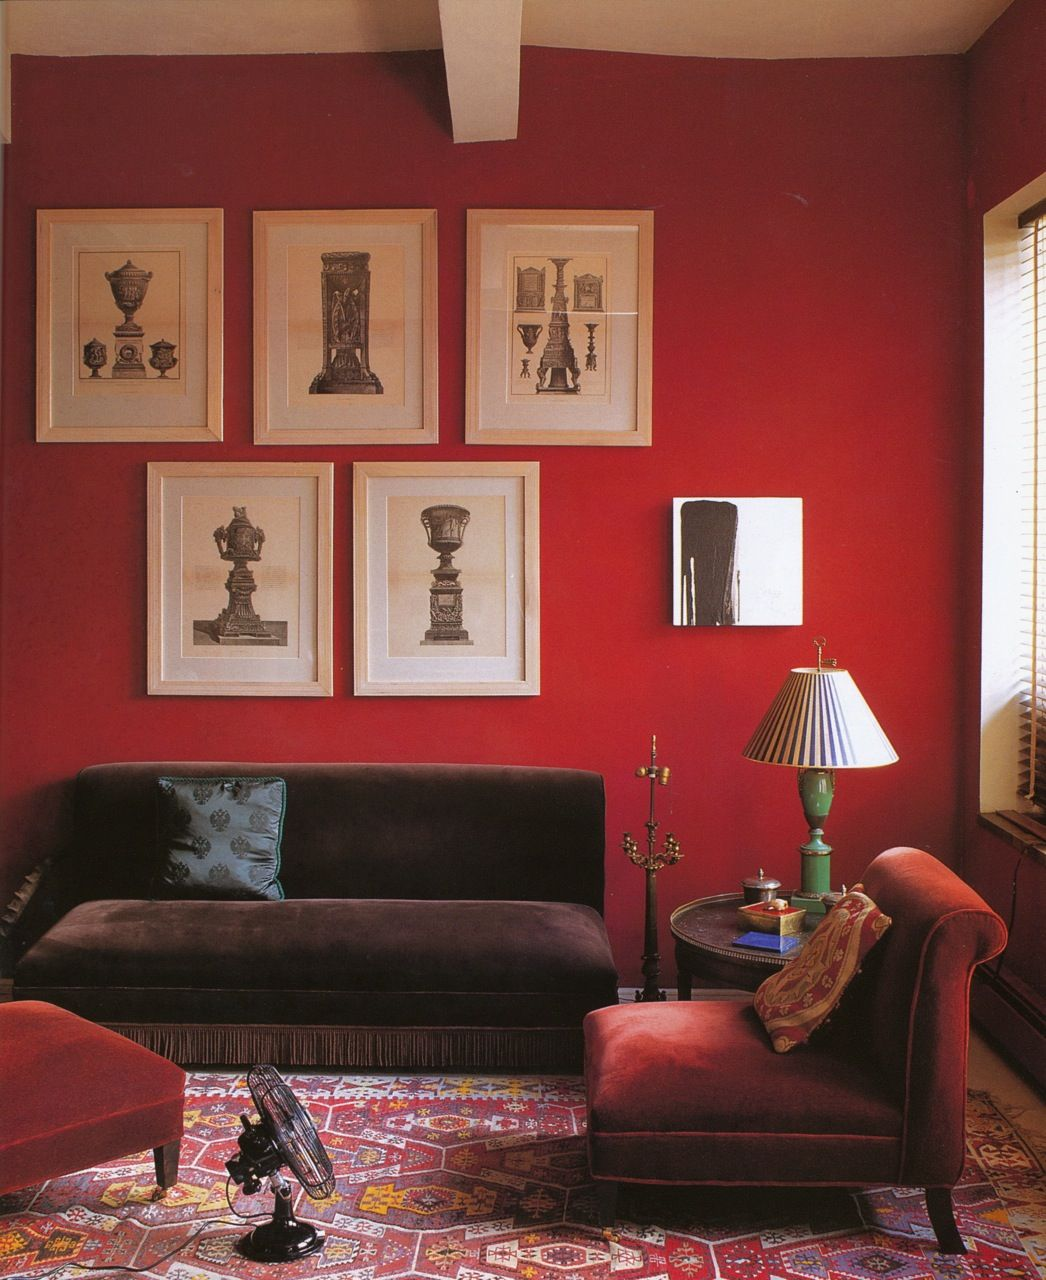 Red Paint Colors For Living Room Paint Dkc 17 Photo Peter Margonelli From Color Palettes The